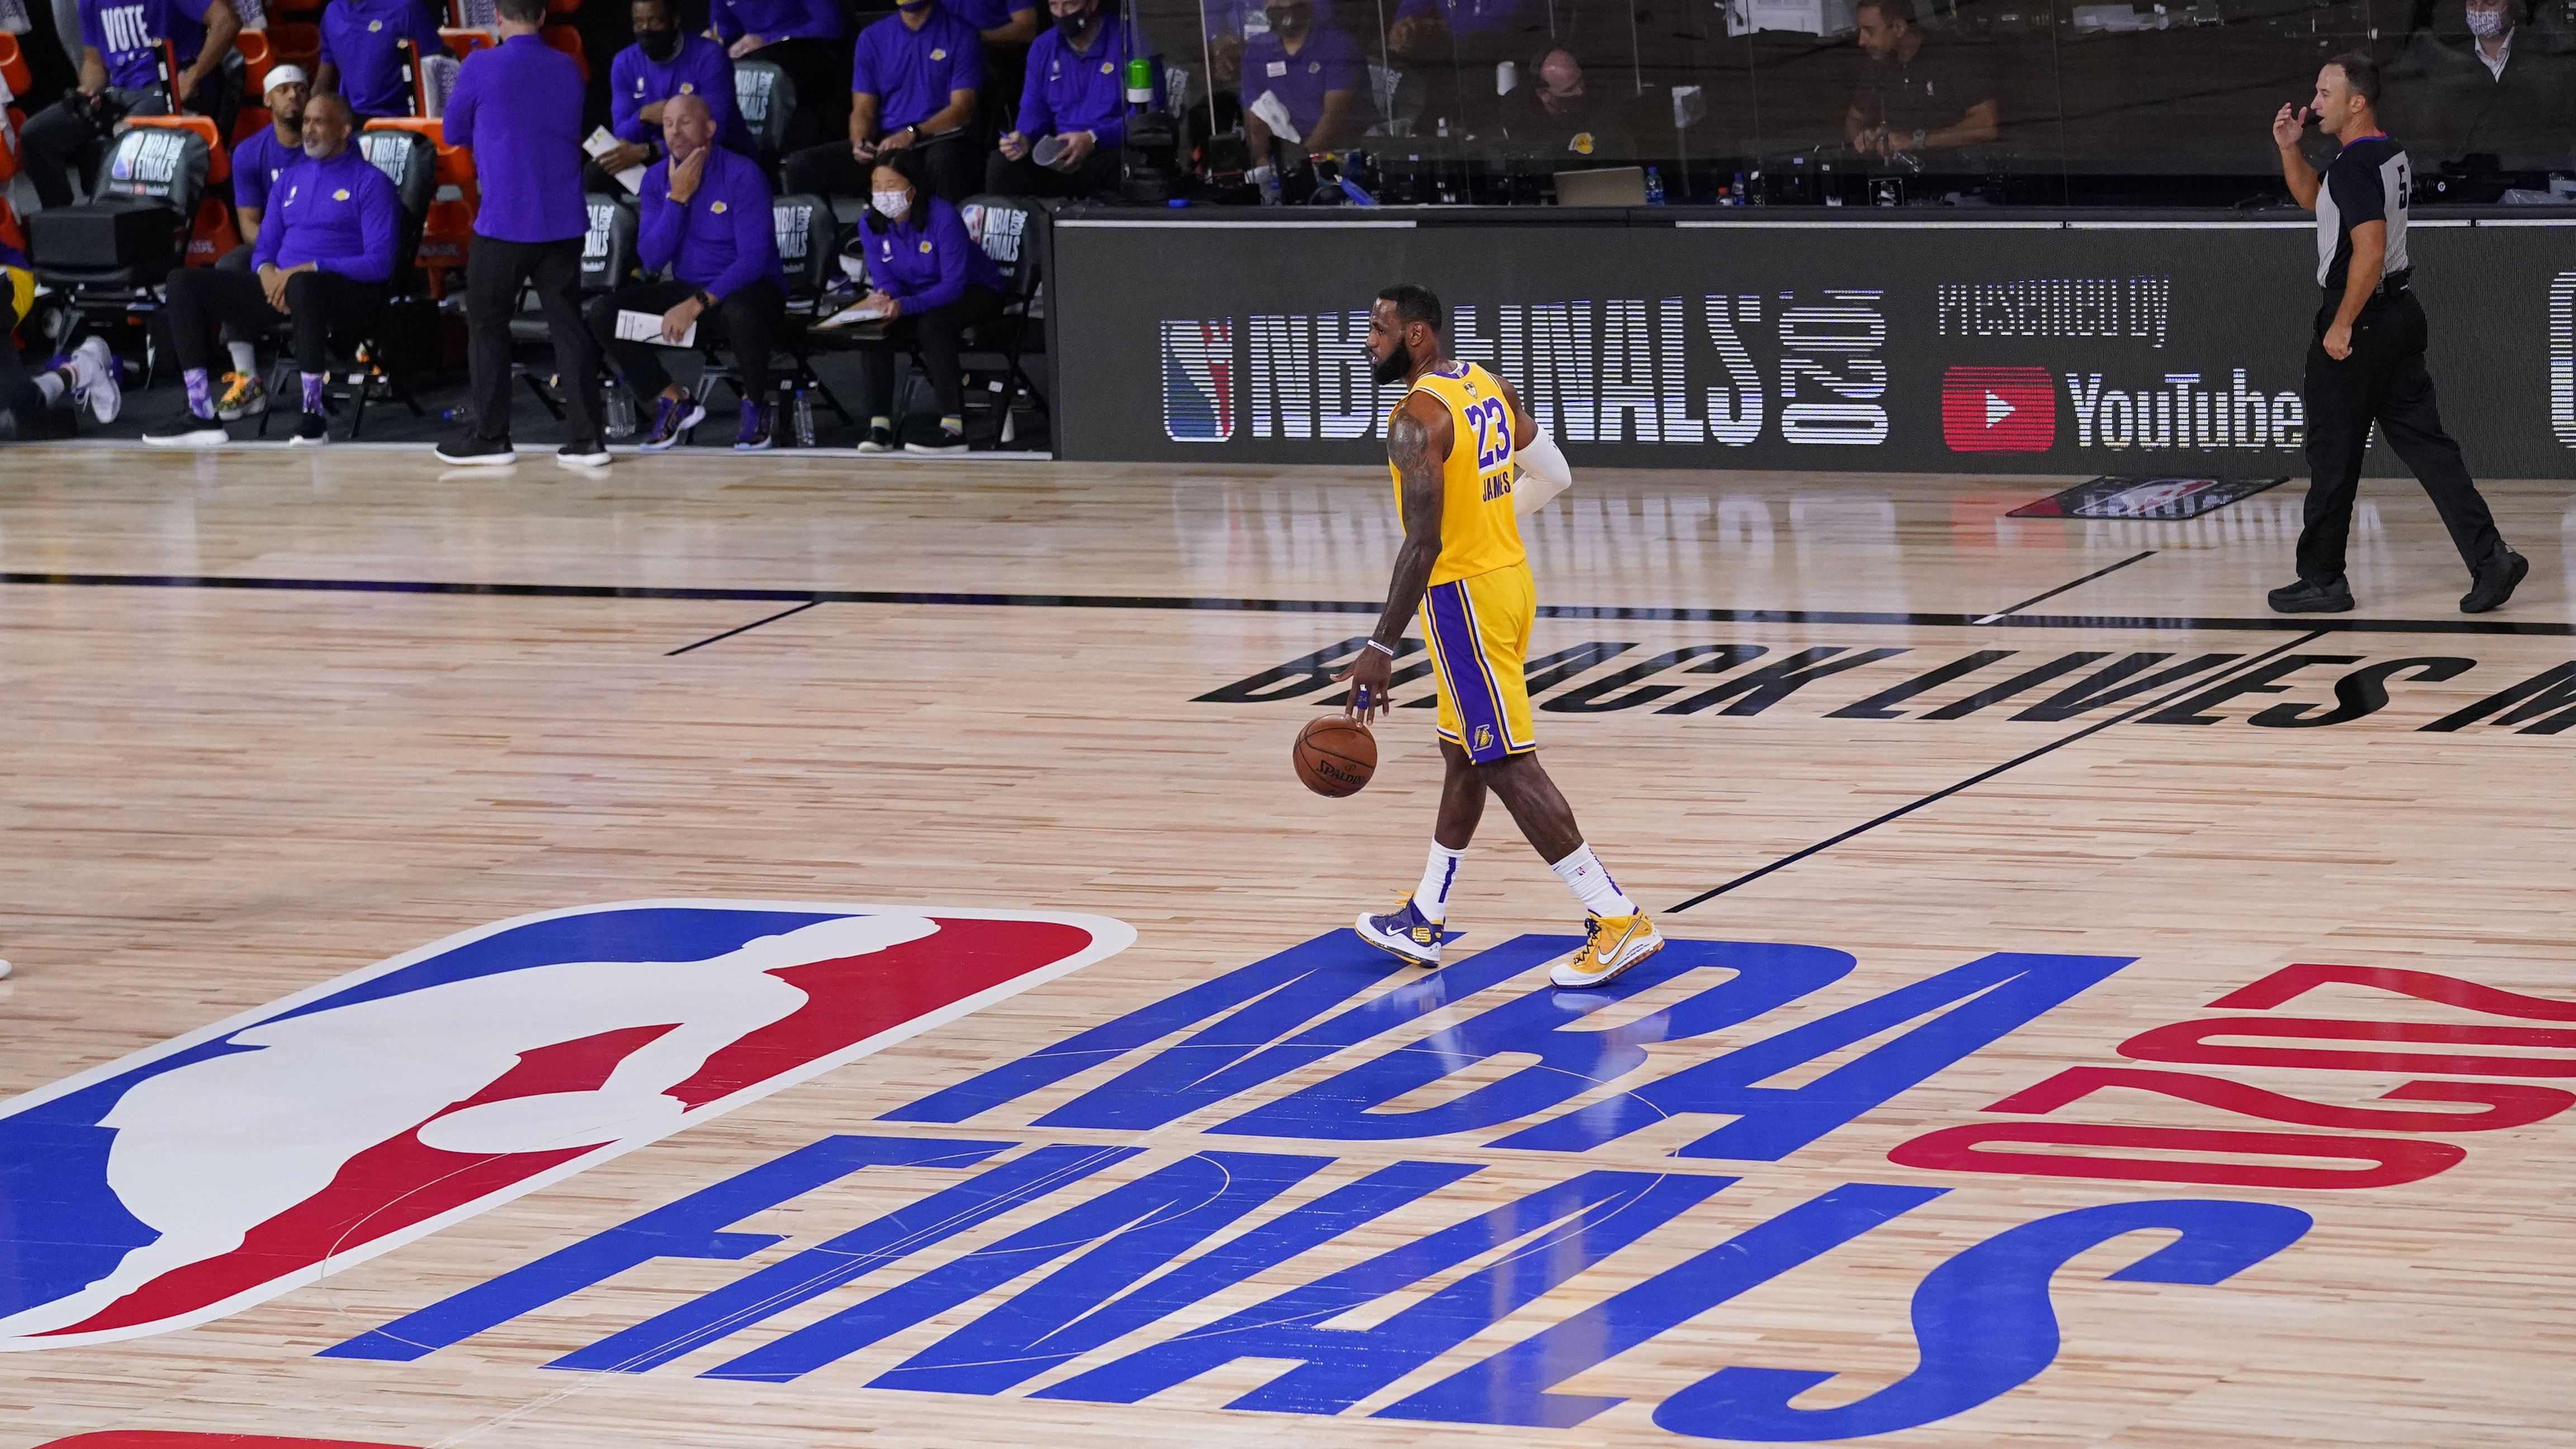 Miami Heat Vs Los Angeles Lakers Game 2 Free Live Stream 10 2 20 Watch Lebron James Vs Jimmy Butler In Nba Finals Online Time Tv Channel Nj Com